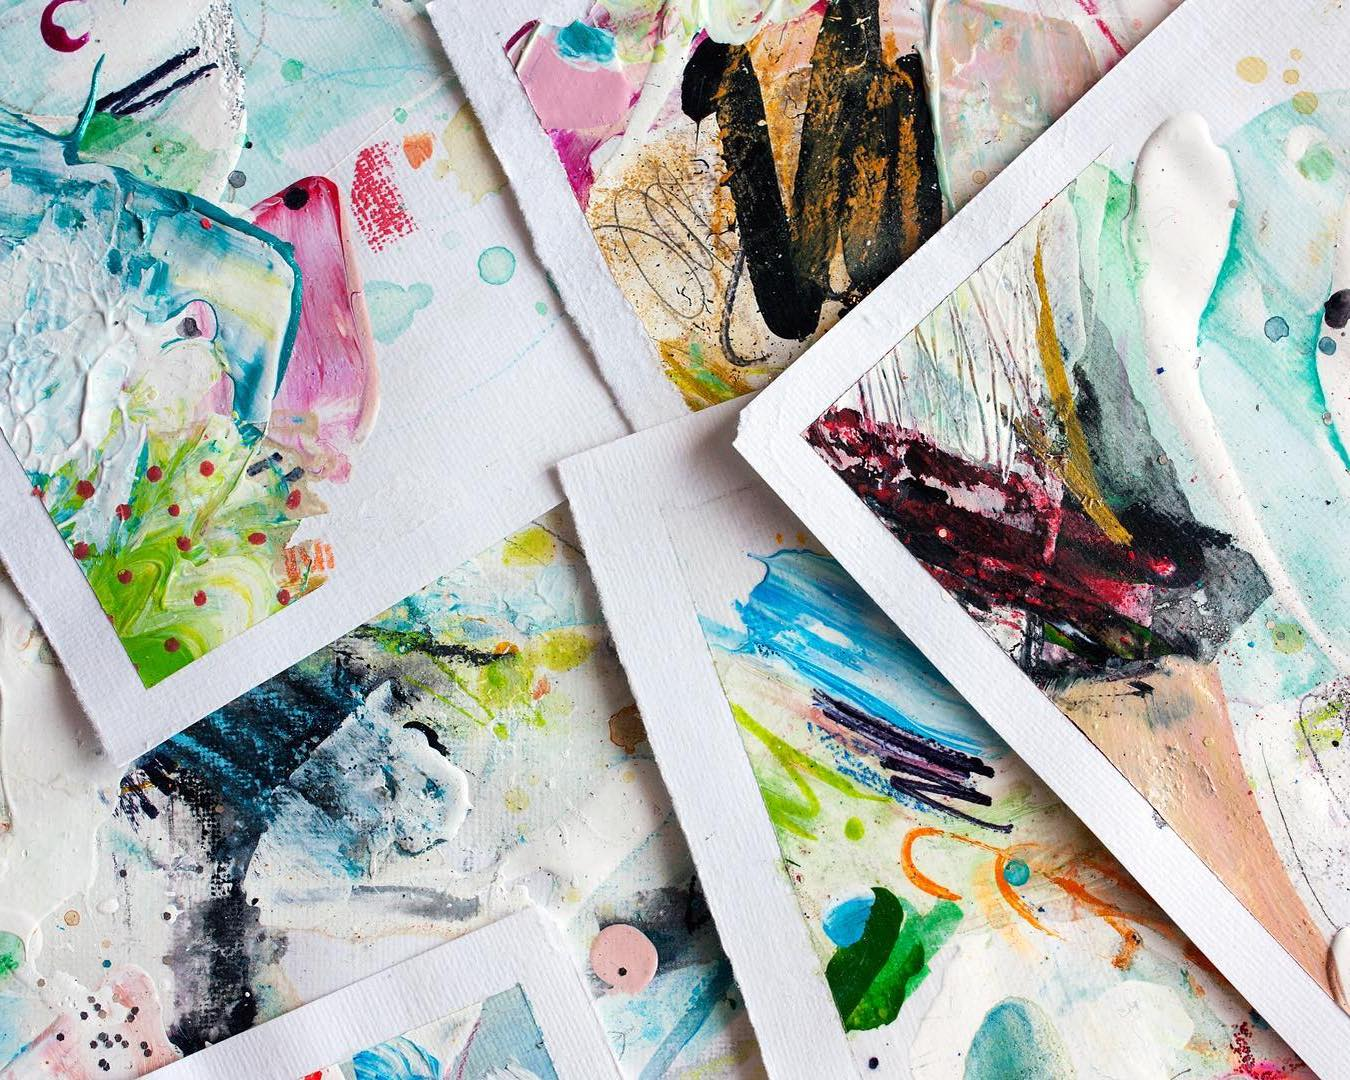 works on paper mixed media by Shelby Dawn Smith